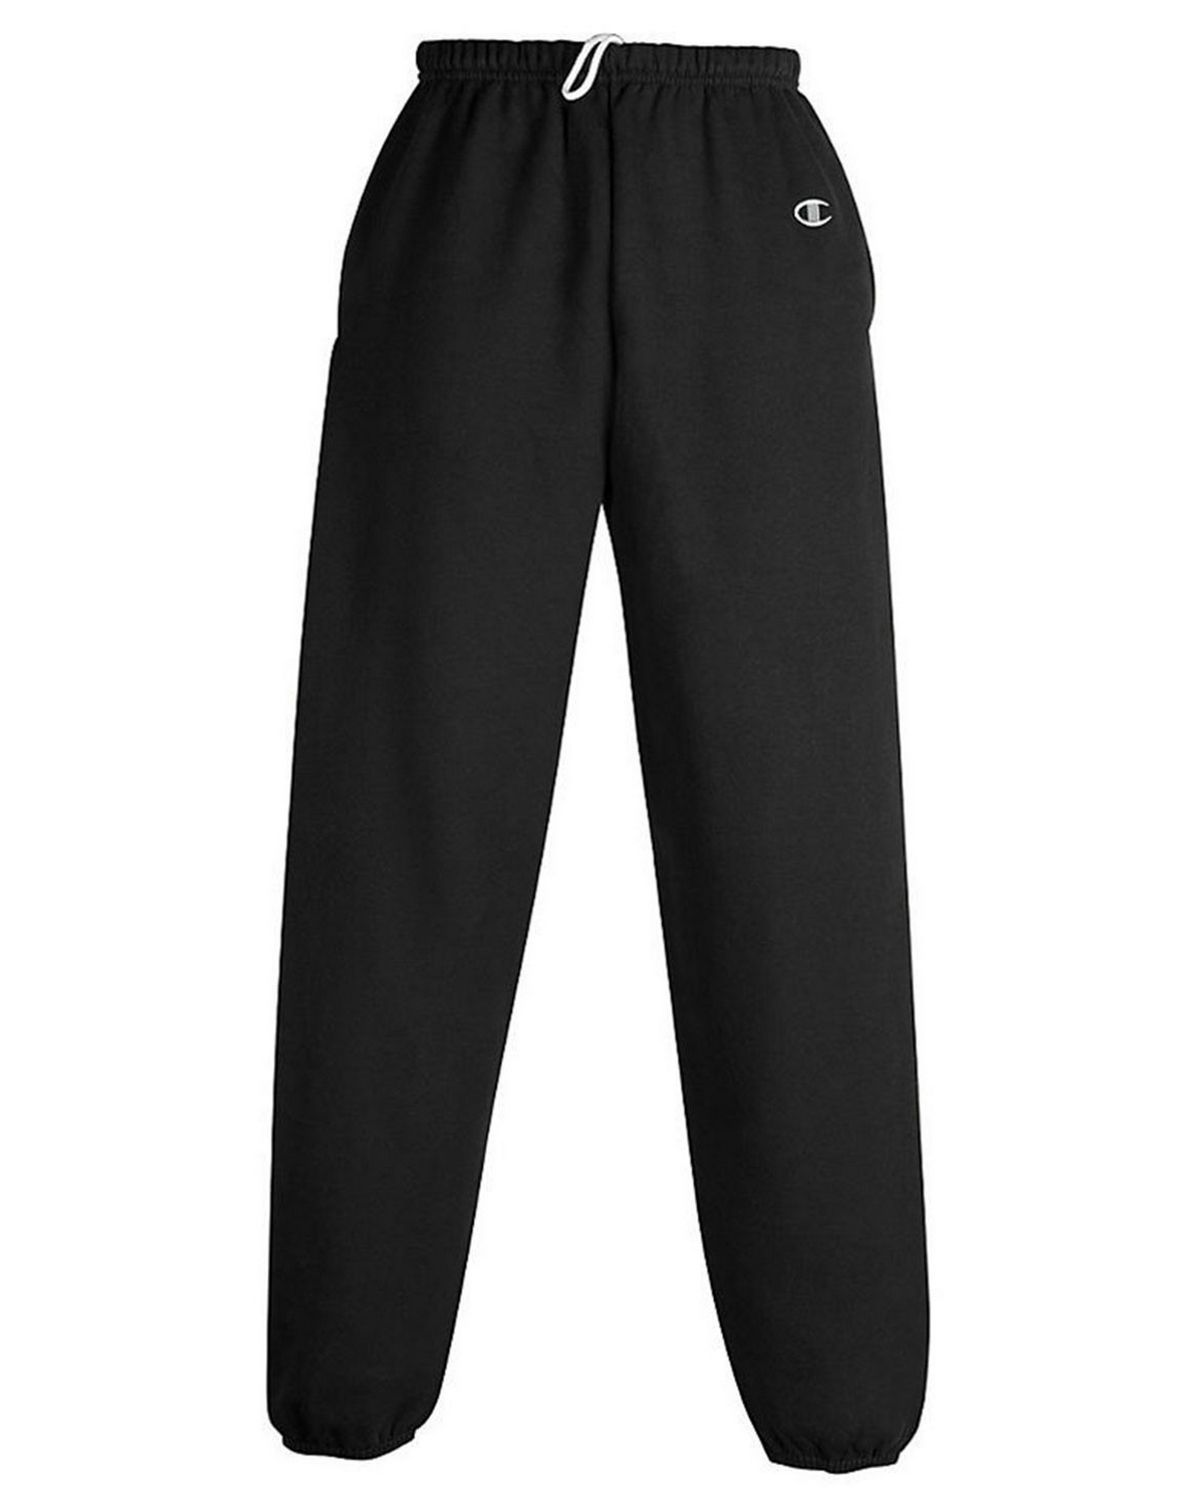 Champion P210 Cotton Max Fleece Pant - Black - XL P210